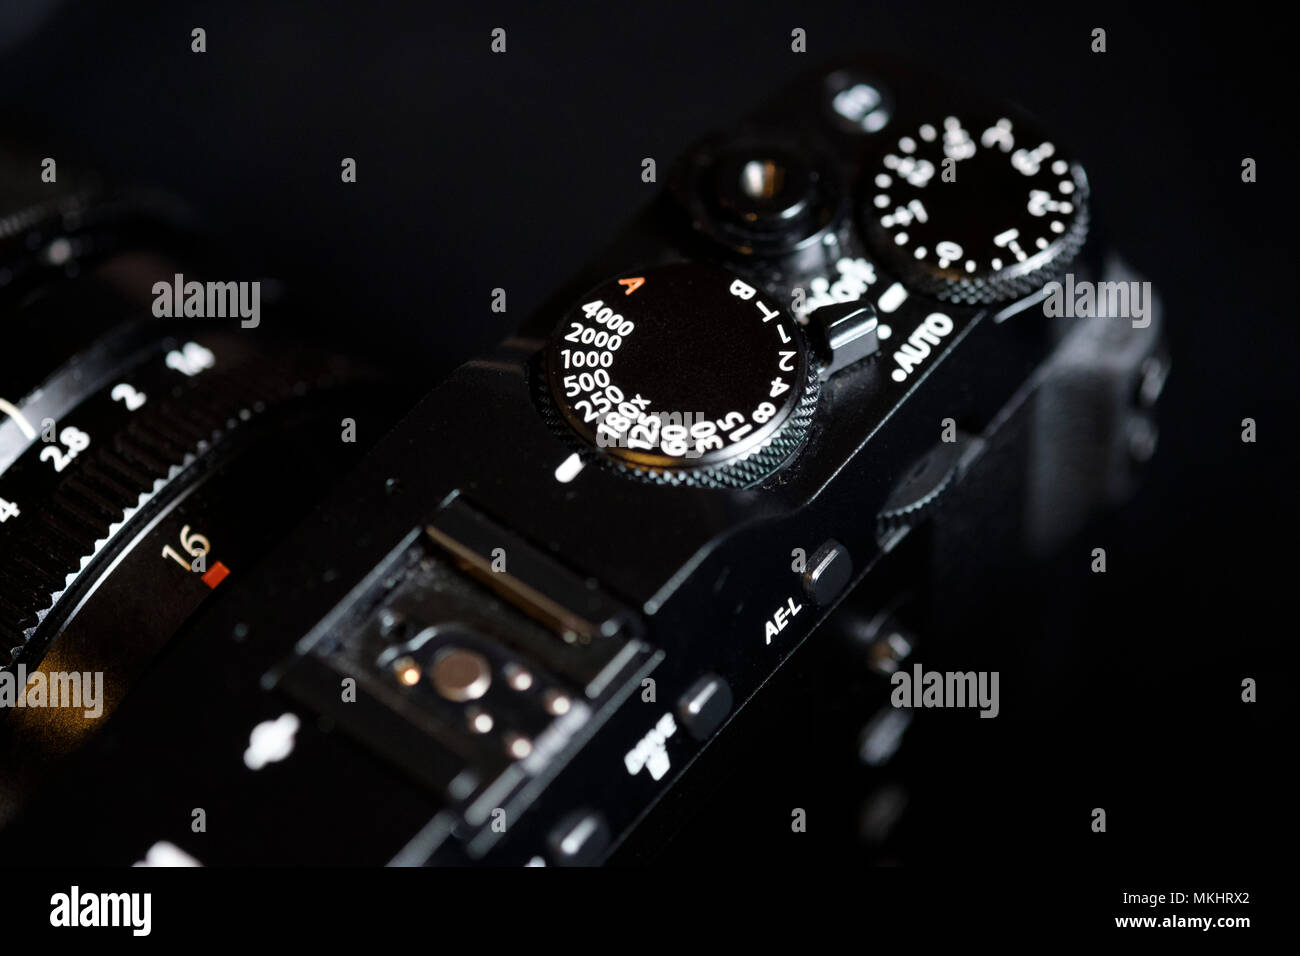 Shutter speed and exposure compensation dials on a Fujifilm X-E3 digital mirrorless camera - Stock Image